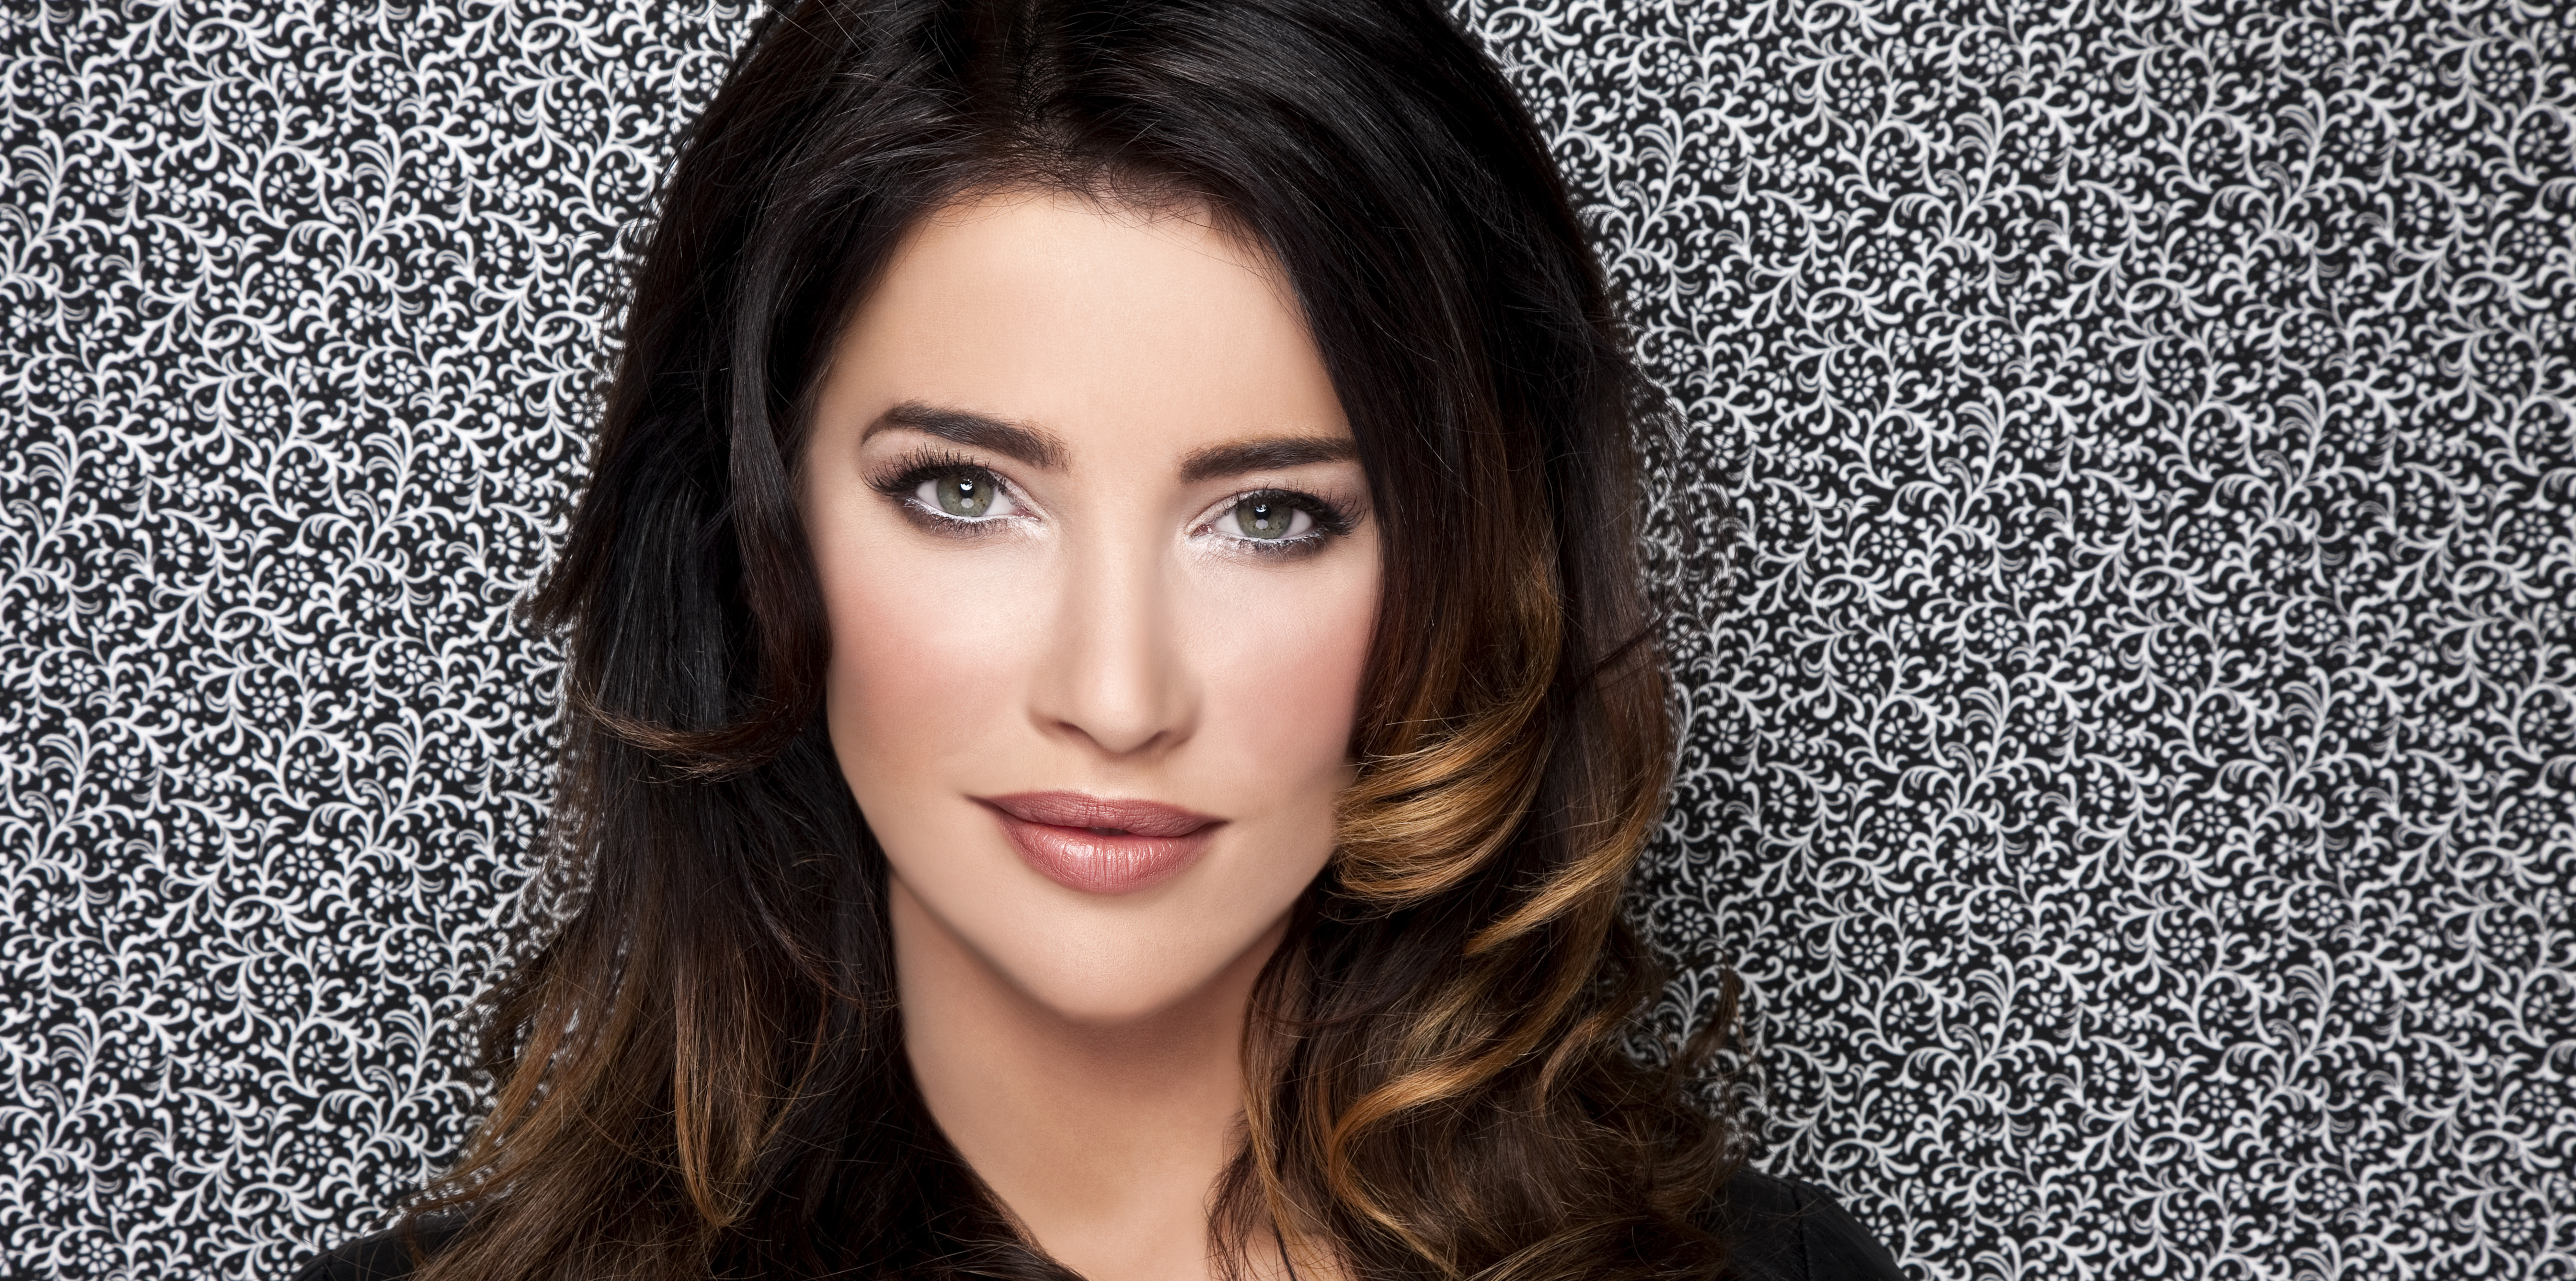 Images Jacqueline MacInnes Wood nude photos 2019